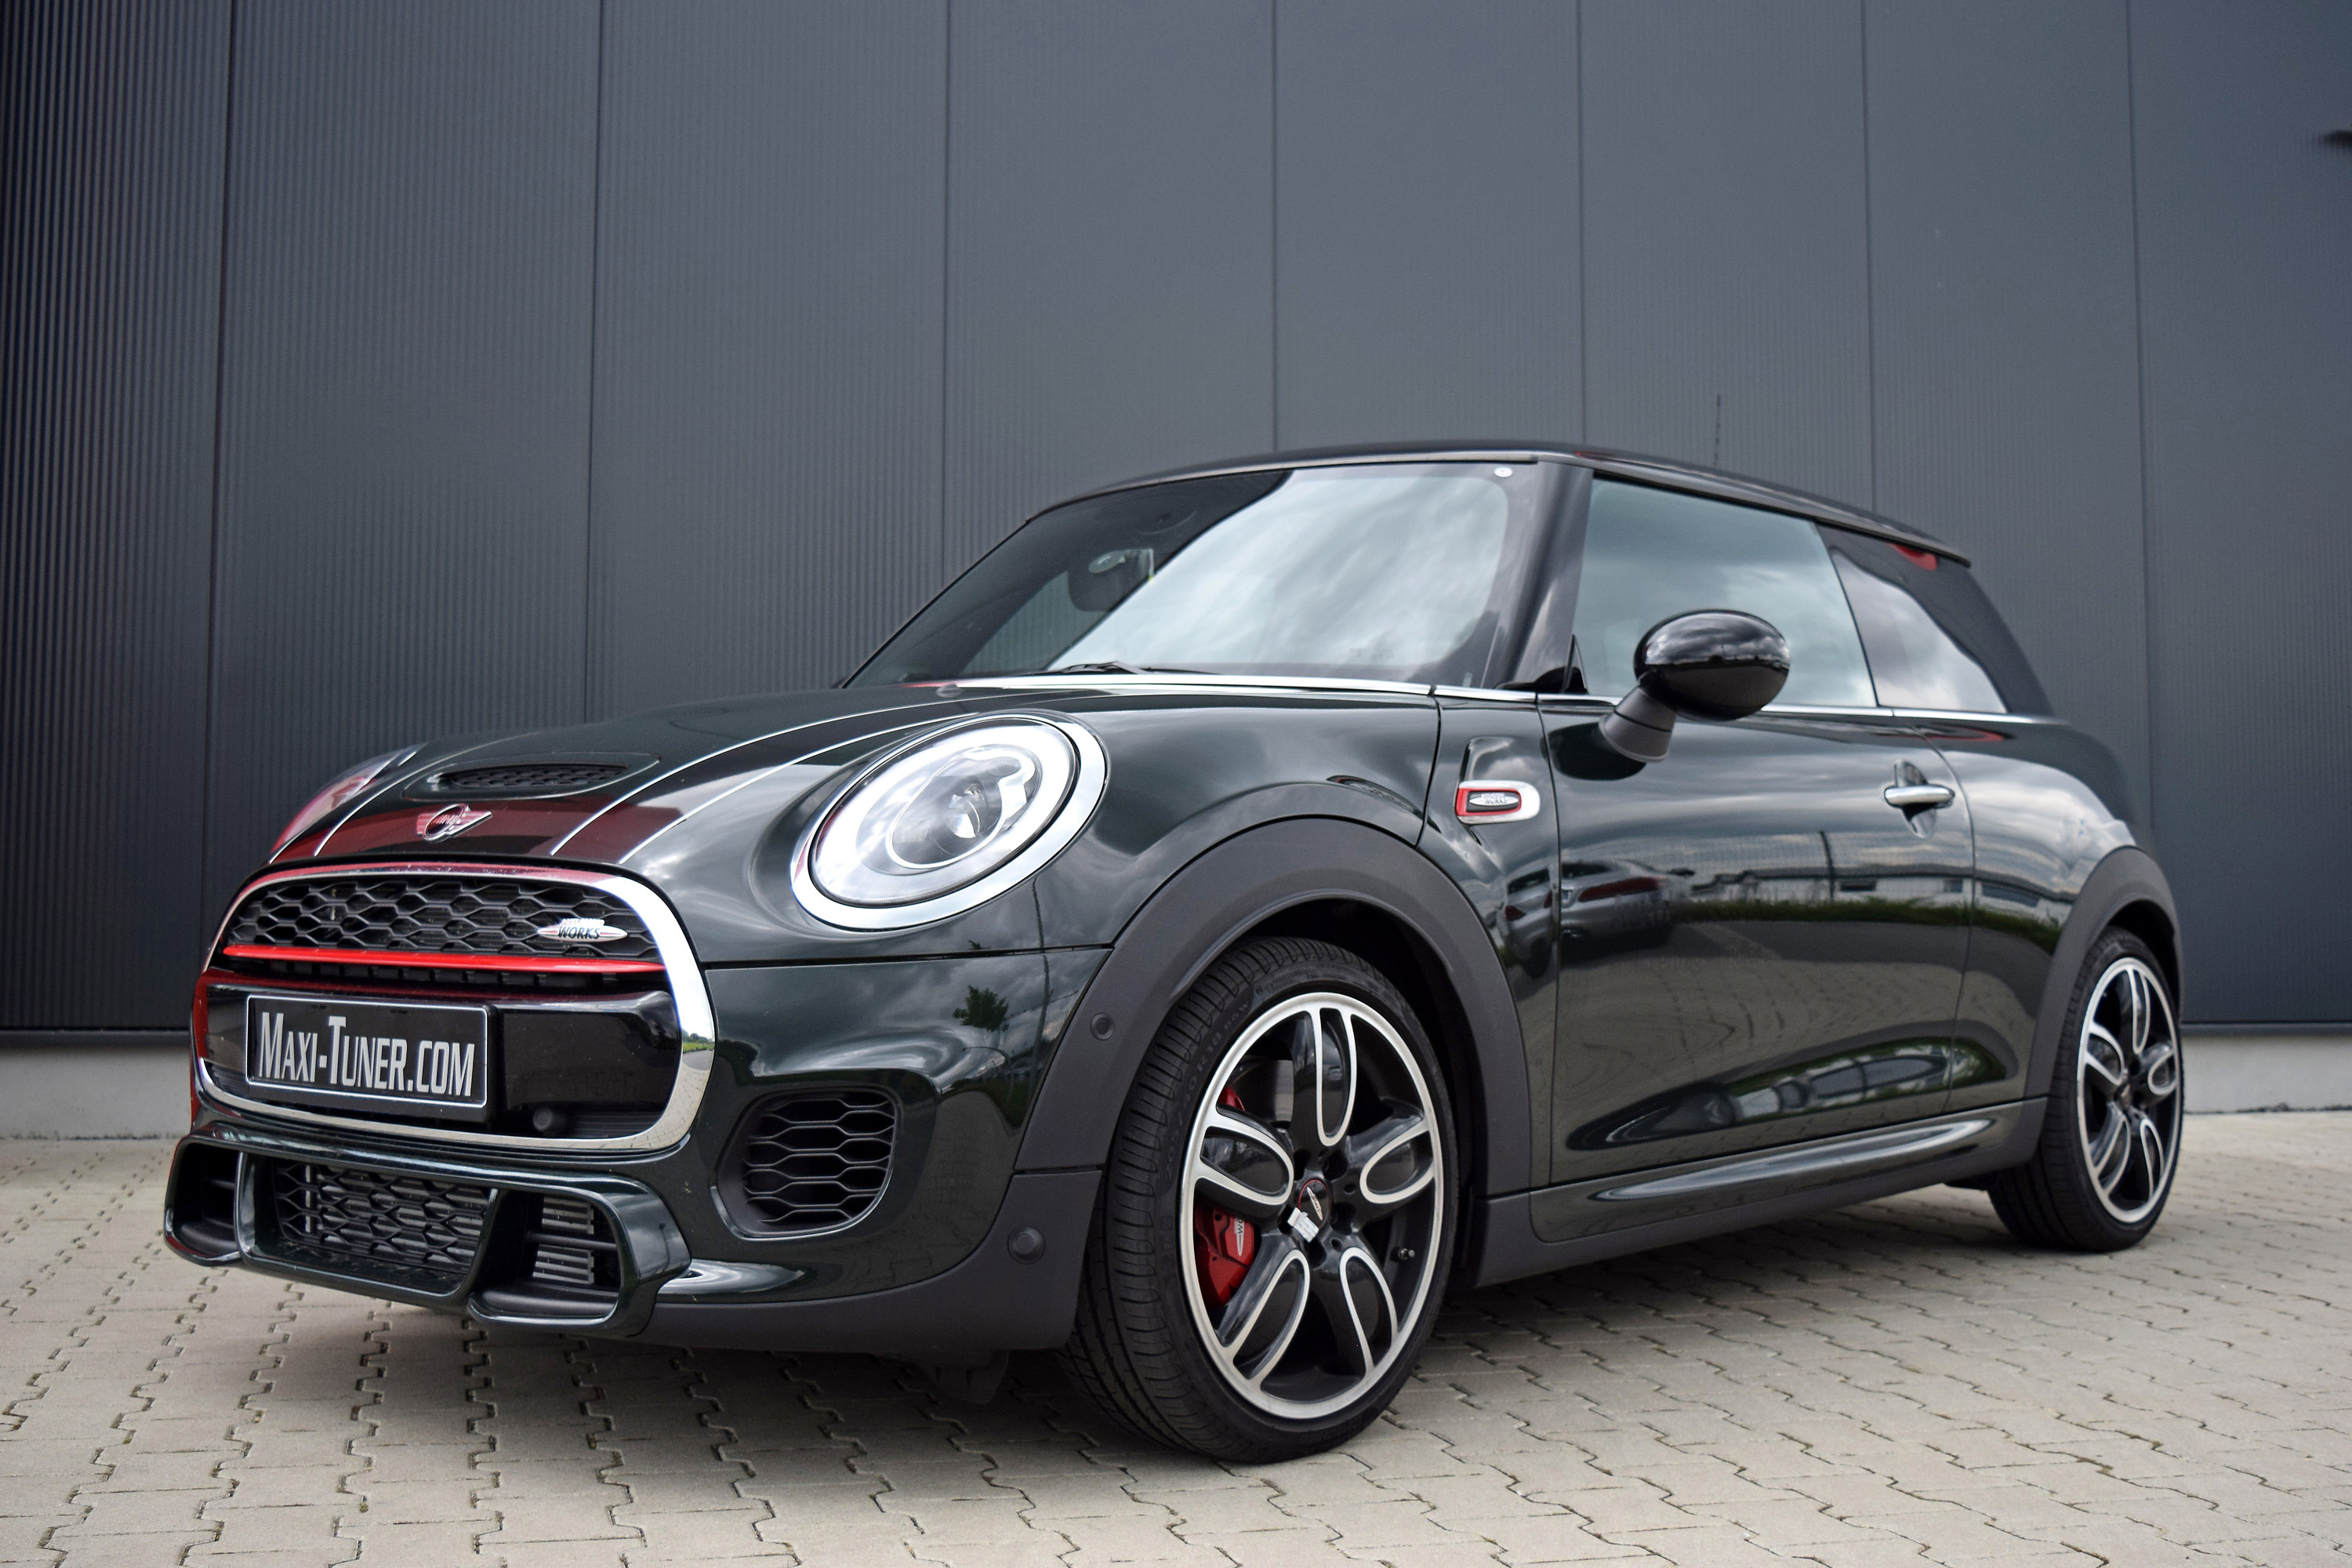 maxi tuner mini john cooper works is 260hp and 390nm strong. Black Bedroom Furniture Sets. Home Design Ideas